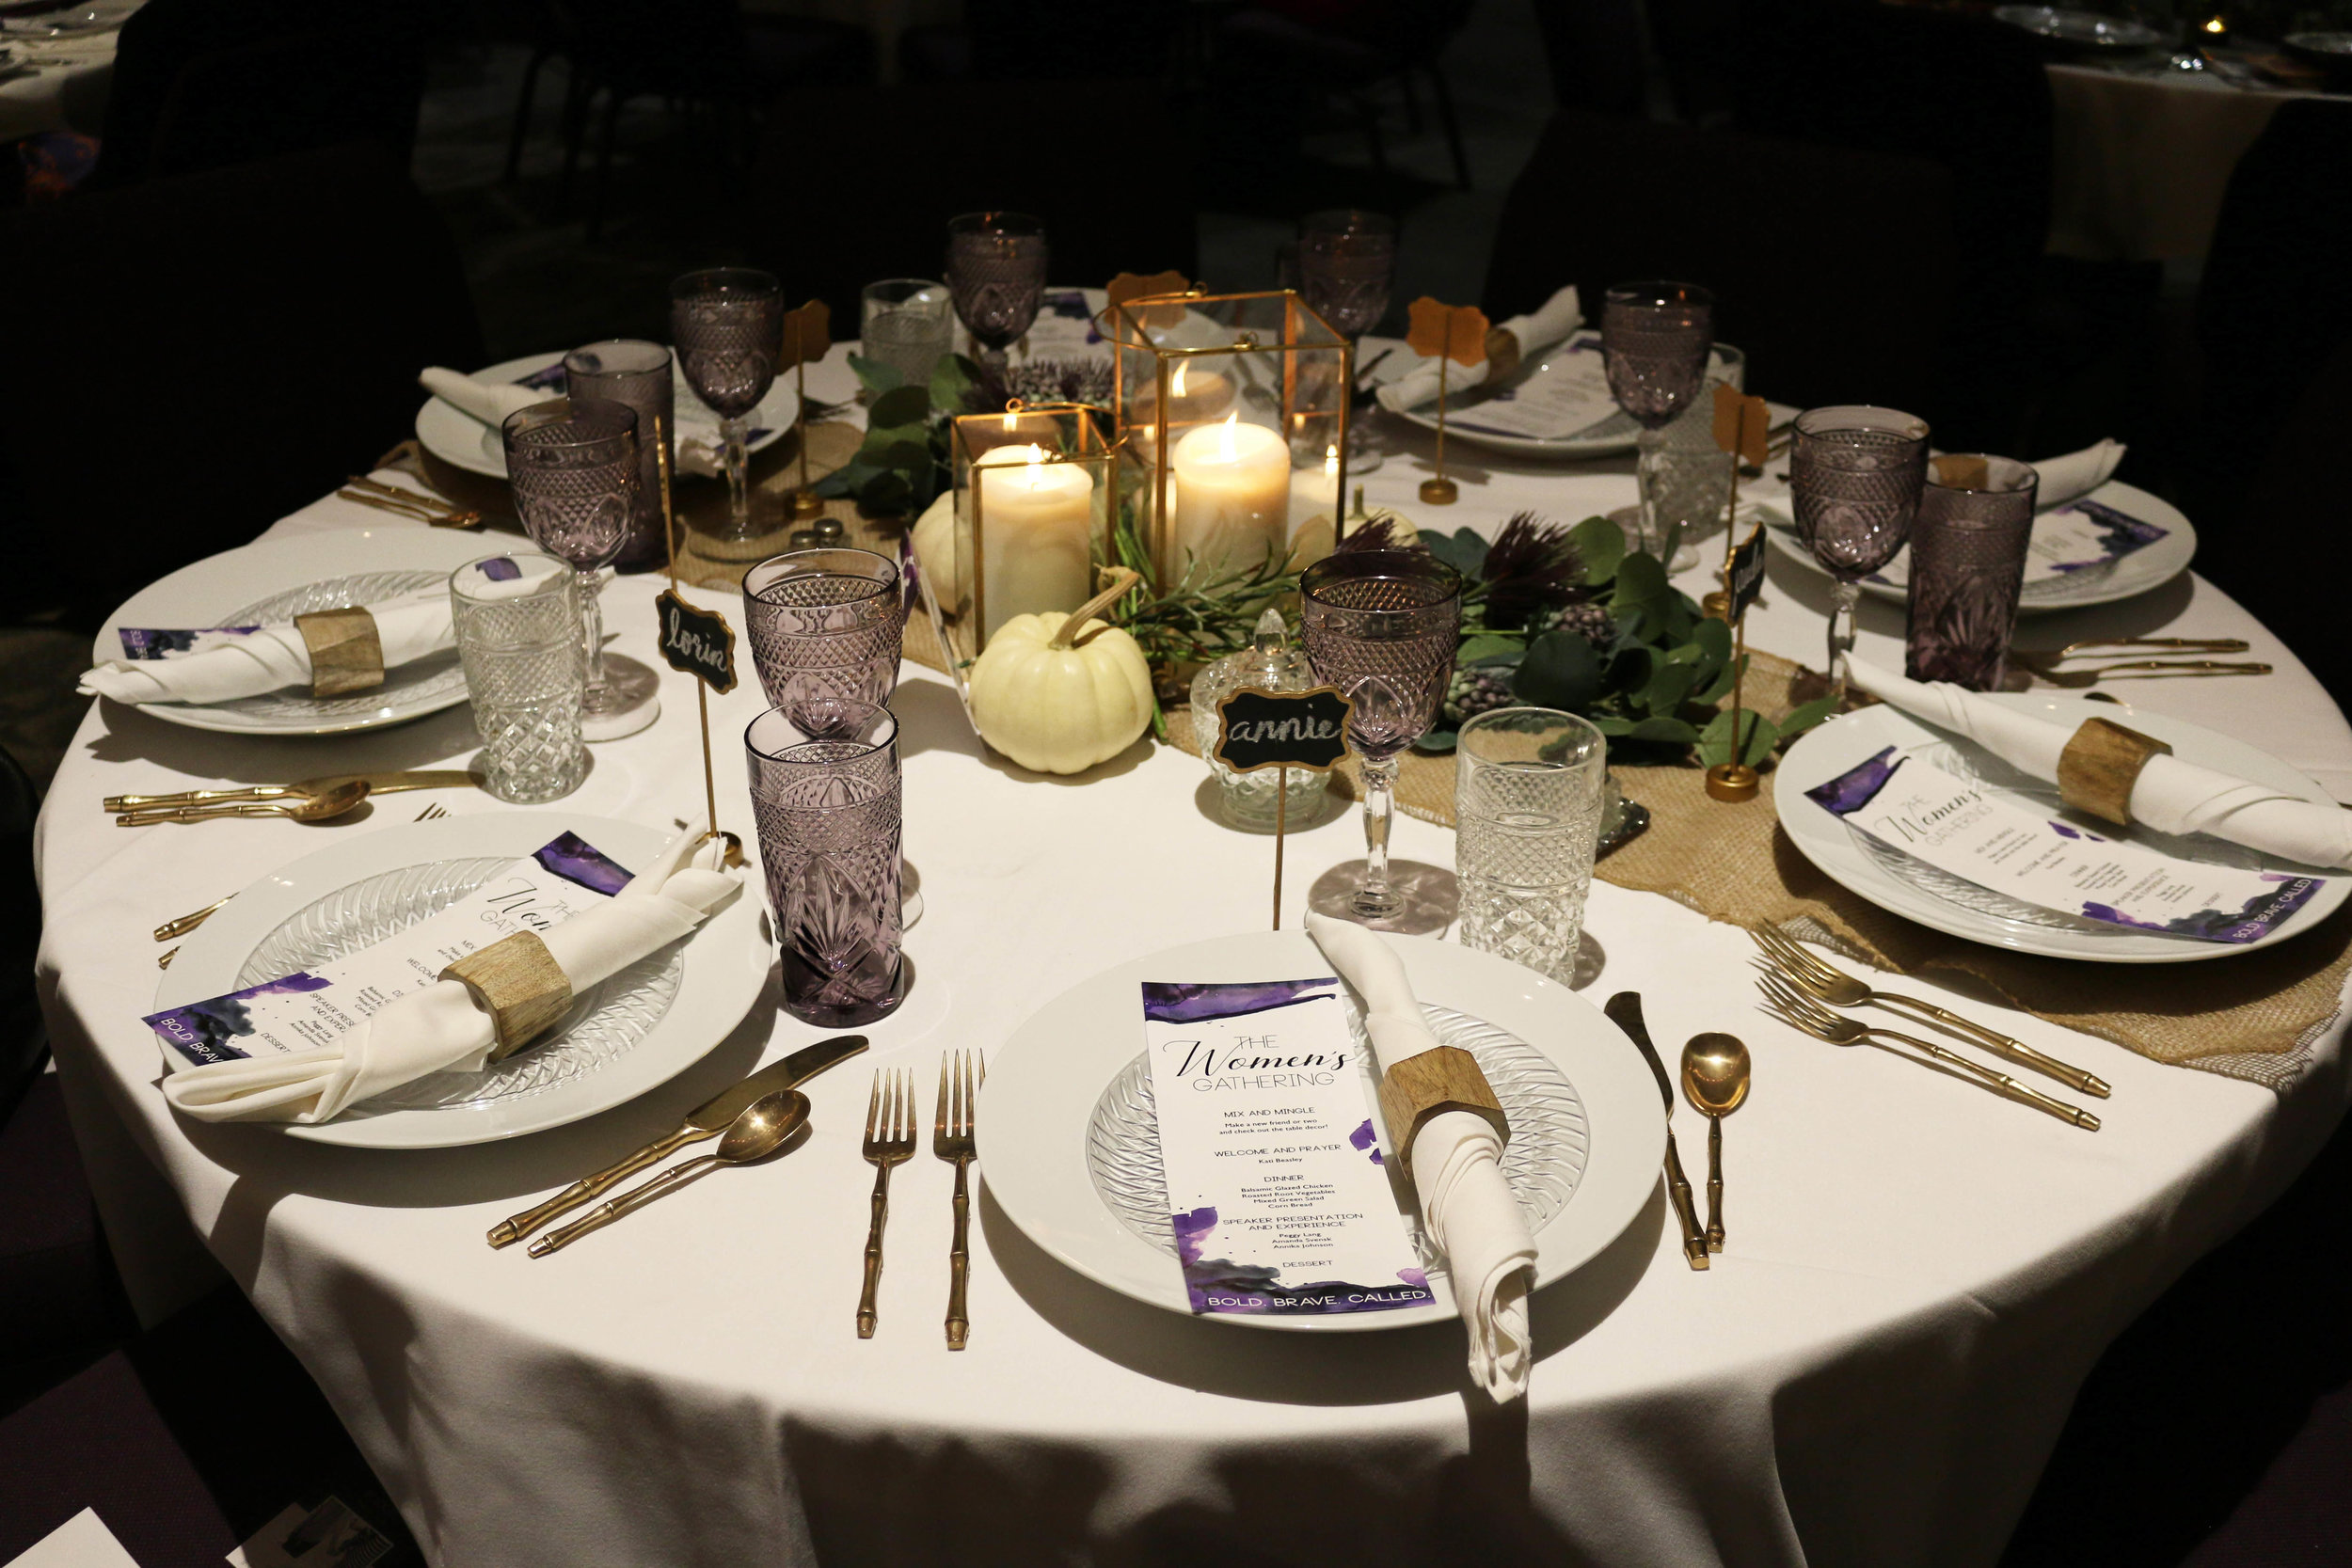 Event Suite Design - Invitation, Program, Connection Cards, Table Numbers, Social Media Posts